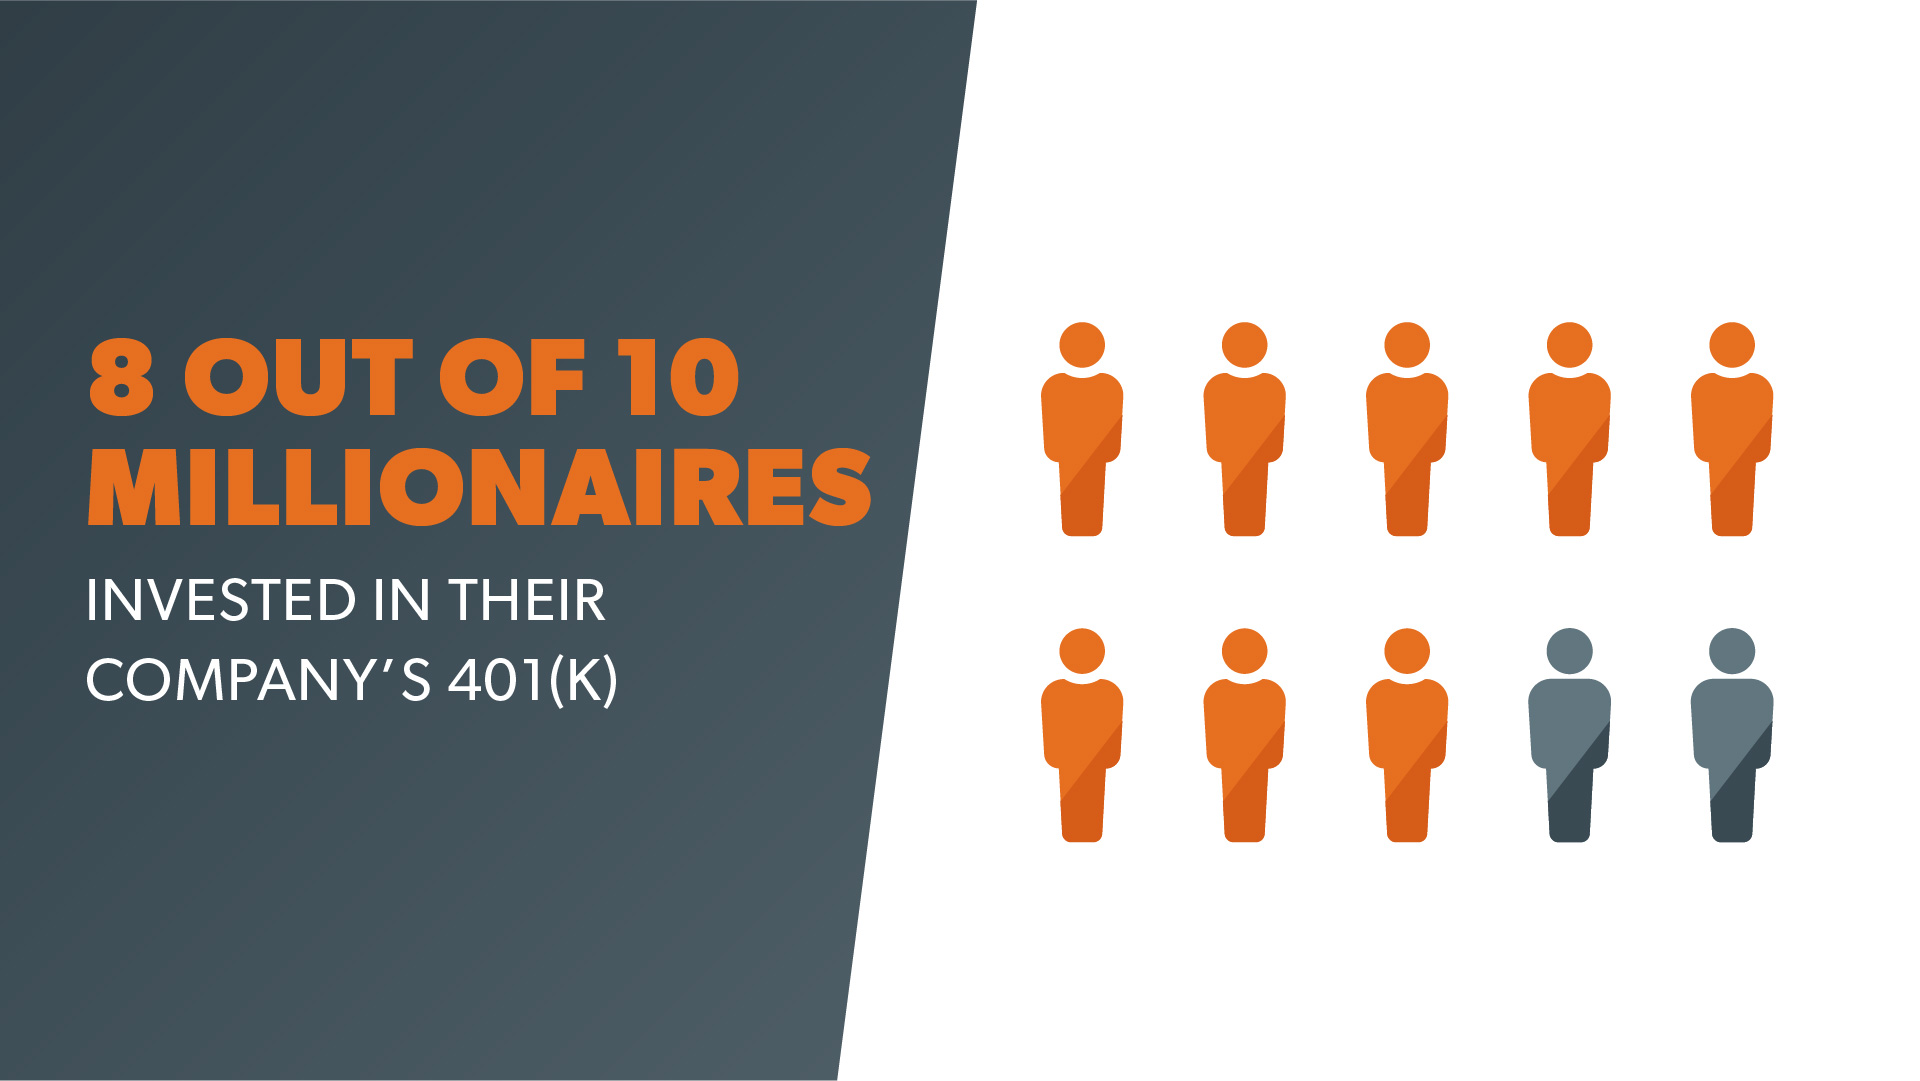 8 out of 10 millionaires invested in their company's 401(k)